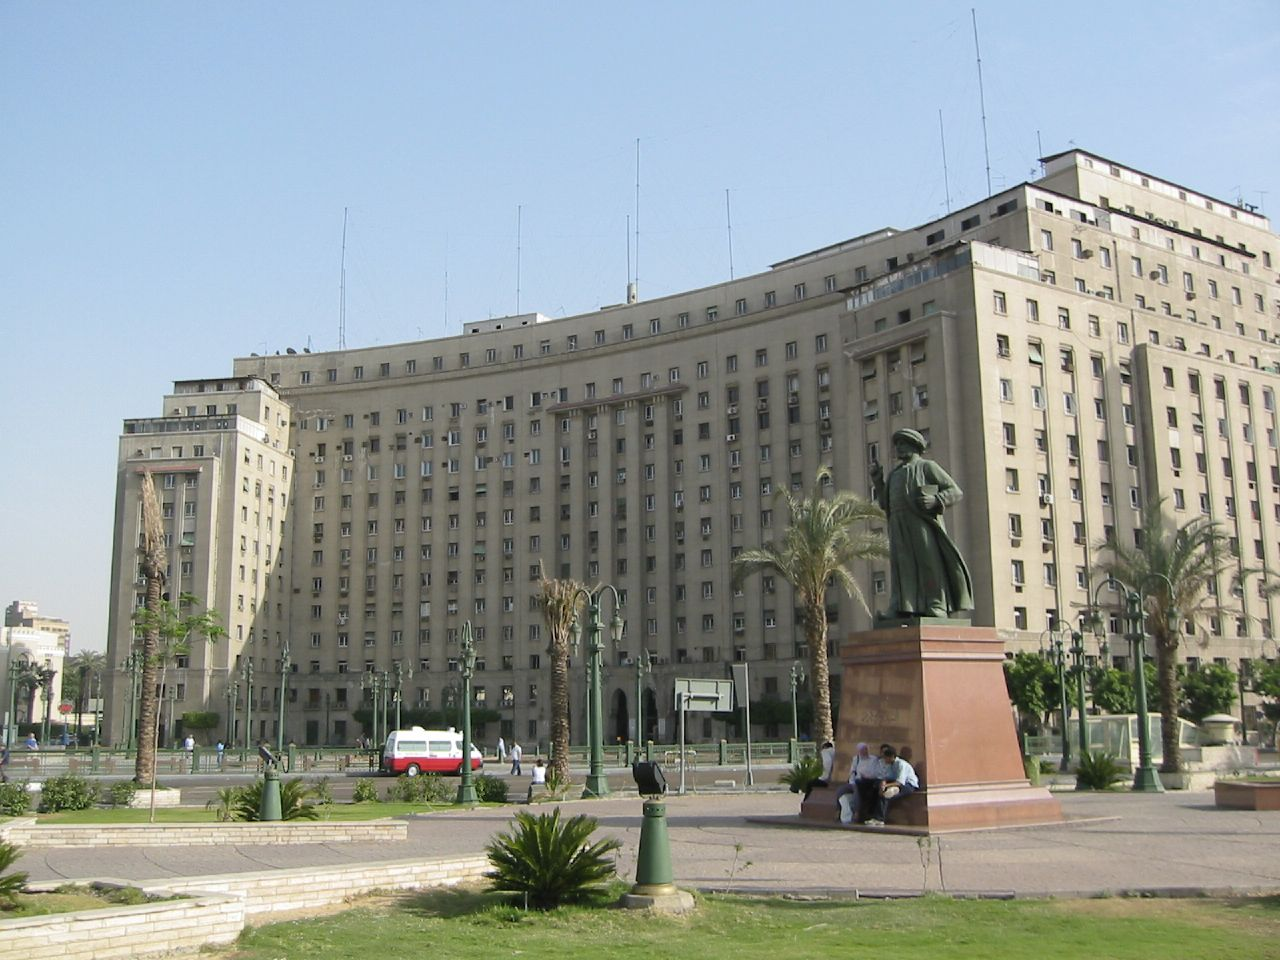 http://upload.wikimedia.org/wikipedia/commons/8/81/Modan_Tahrir_%282005-05-343%29.jpg